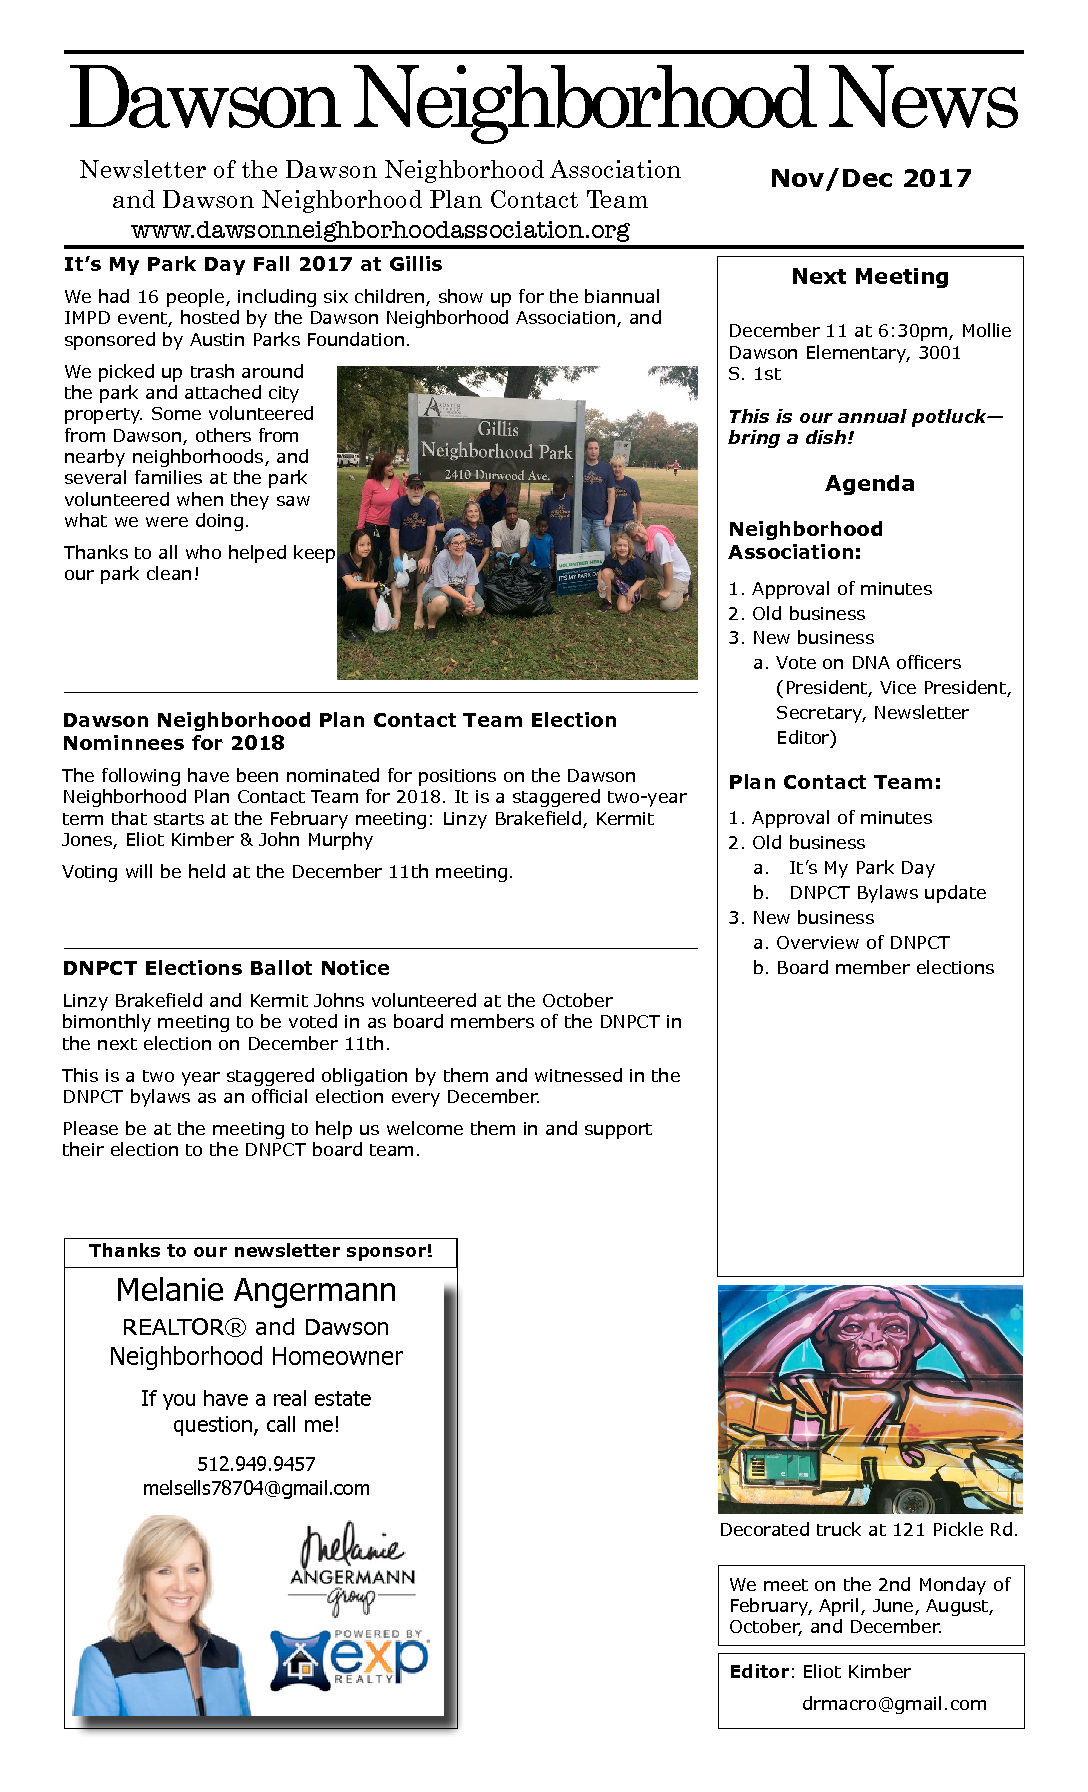 Dawson Neighborhood Newsletter November/December 2017